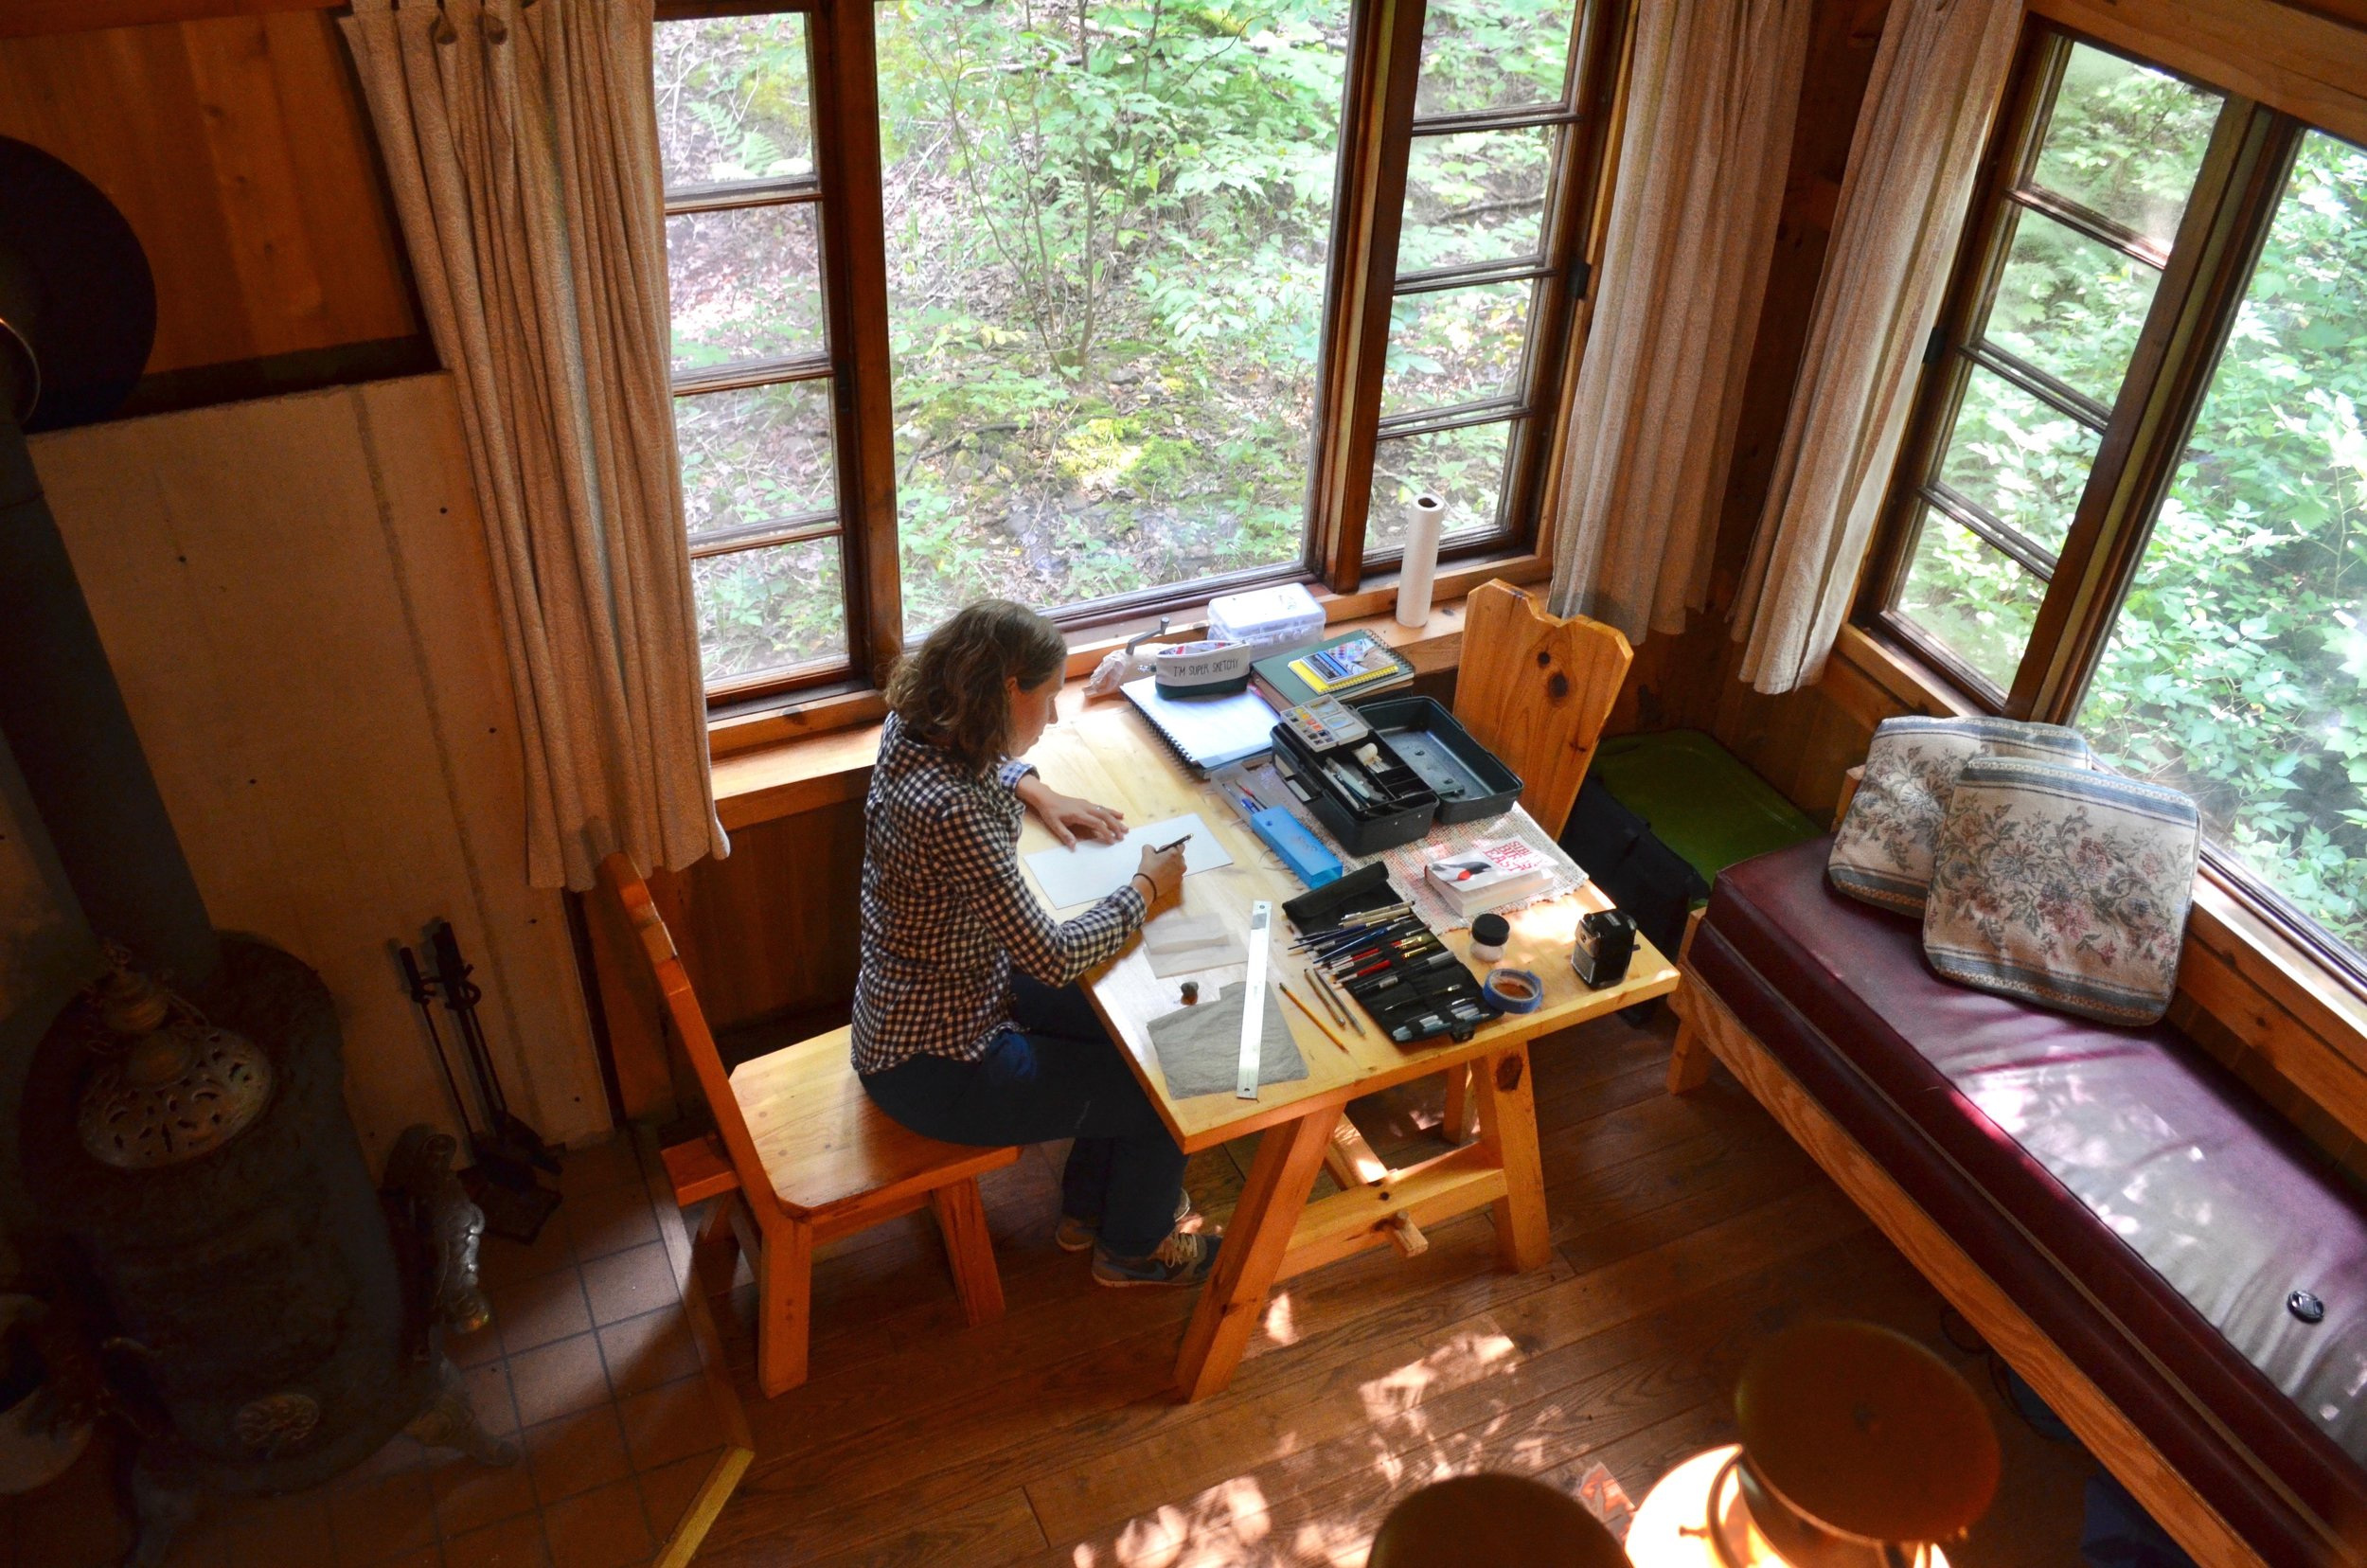 Inside the Artist-in-Residence Cabin